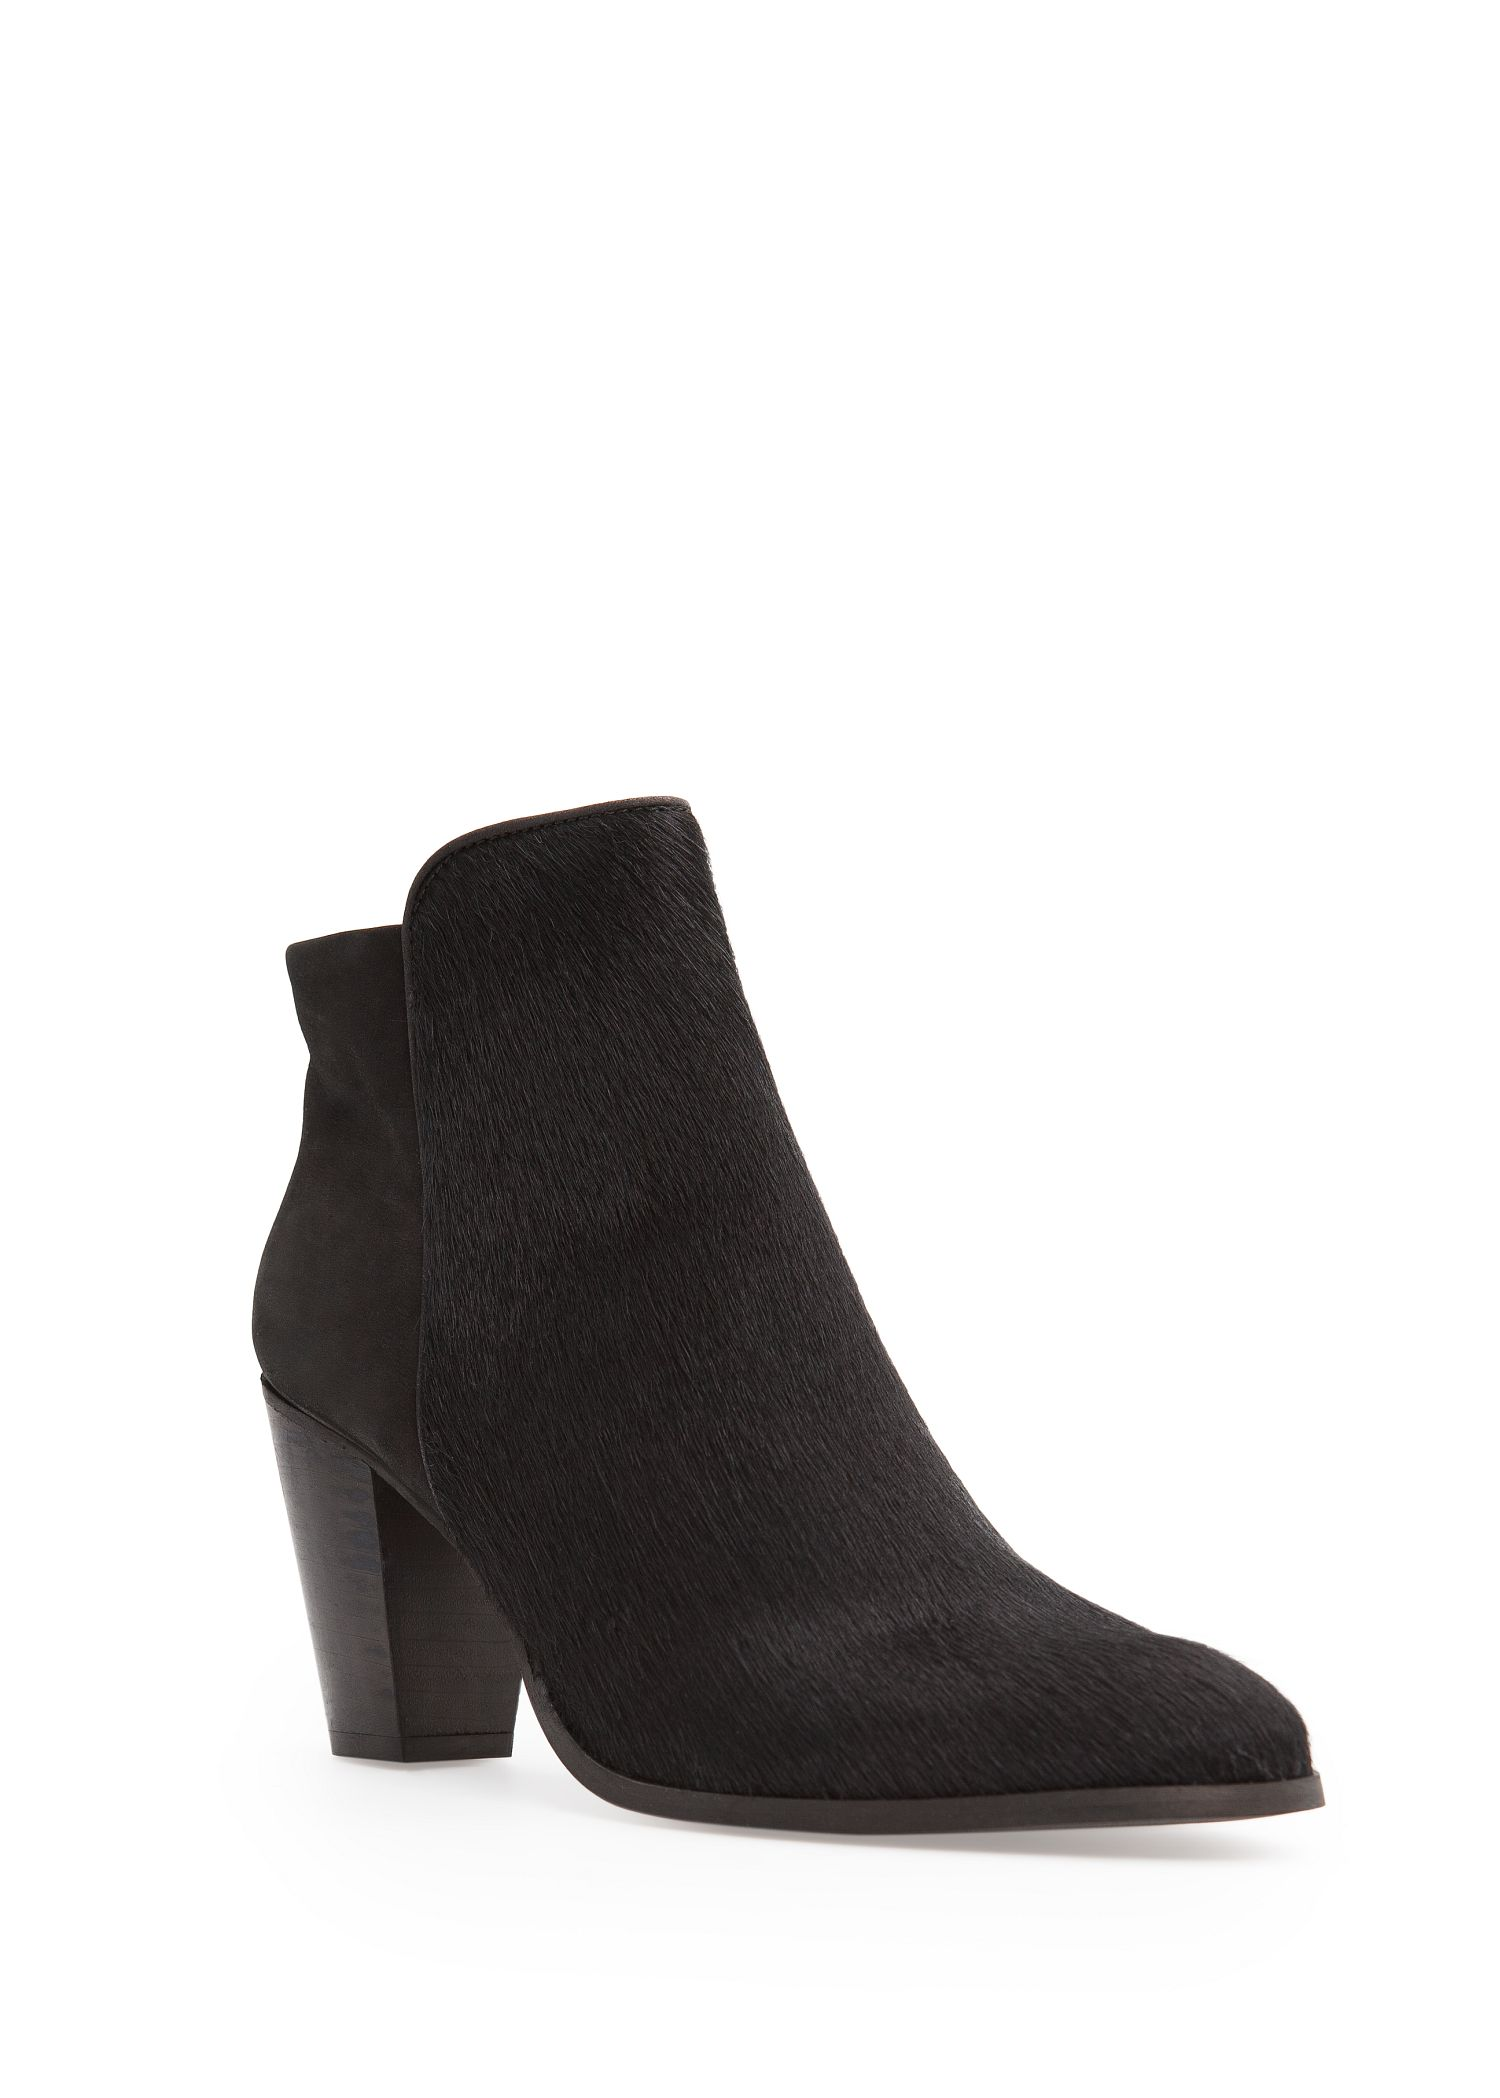 mango combi leather ankle boots in black lyst